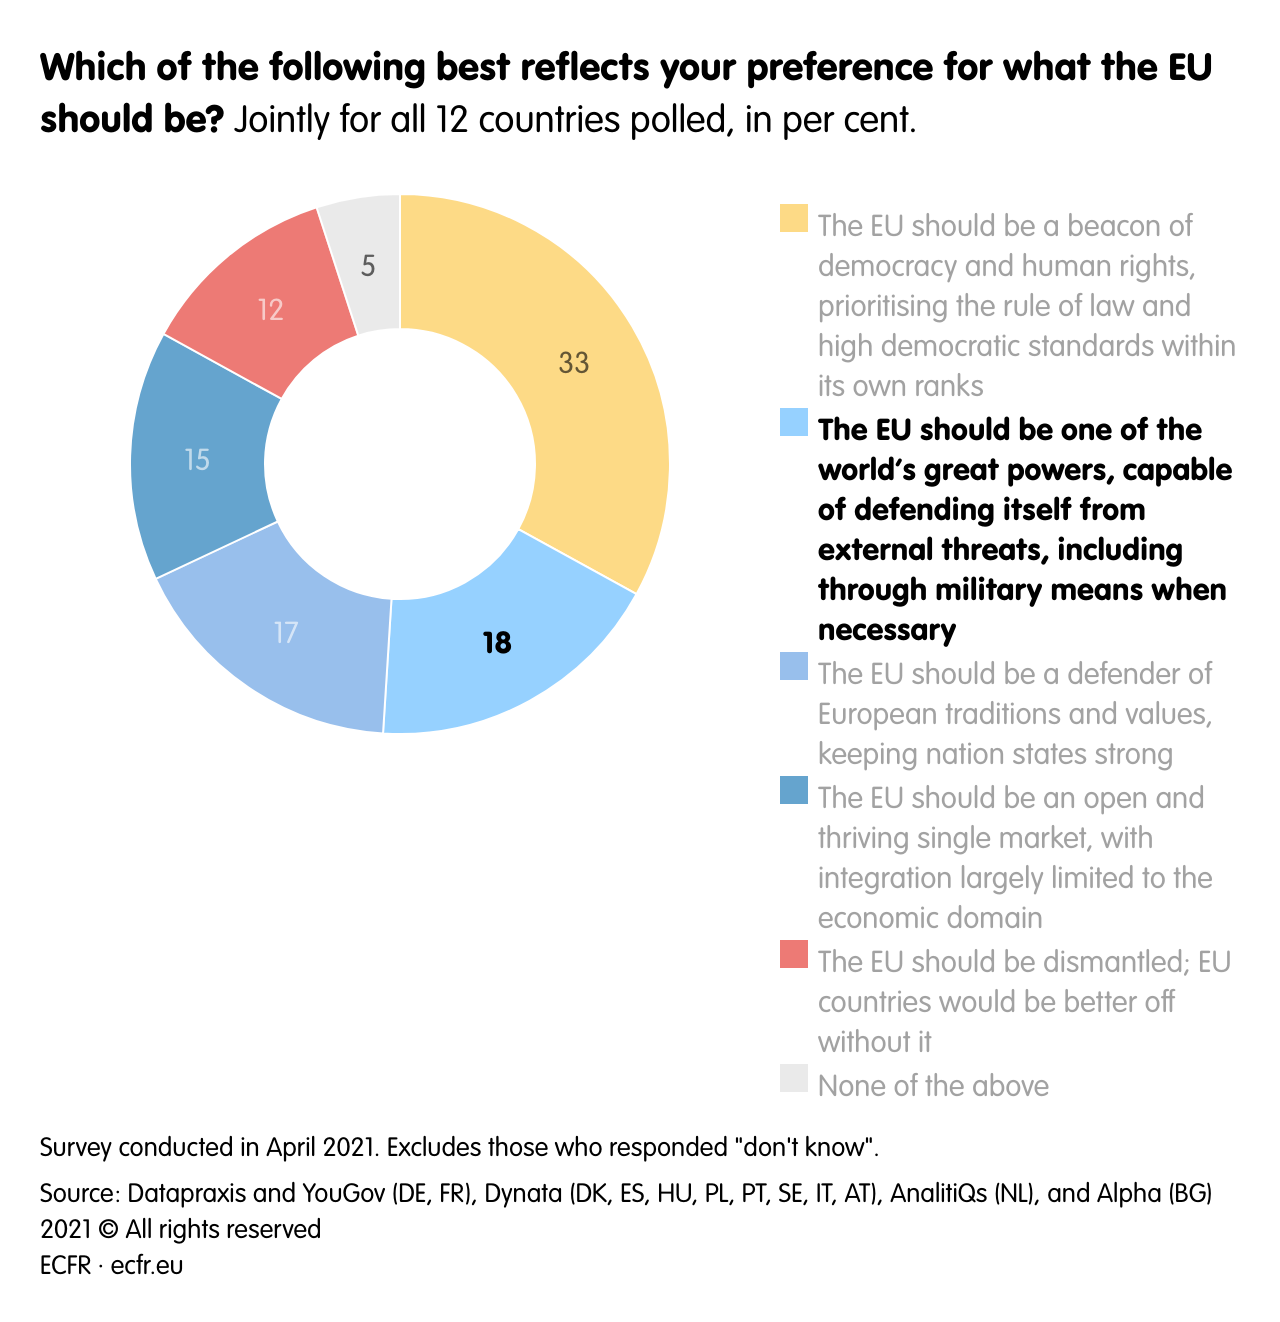 Which of the following best reflects your preference for what the EU should be?